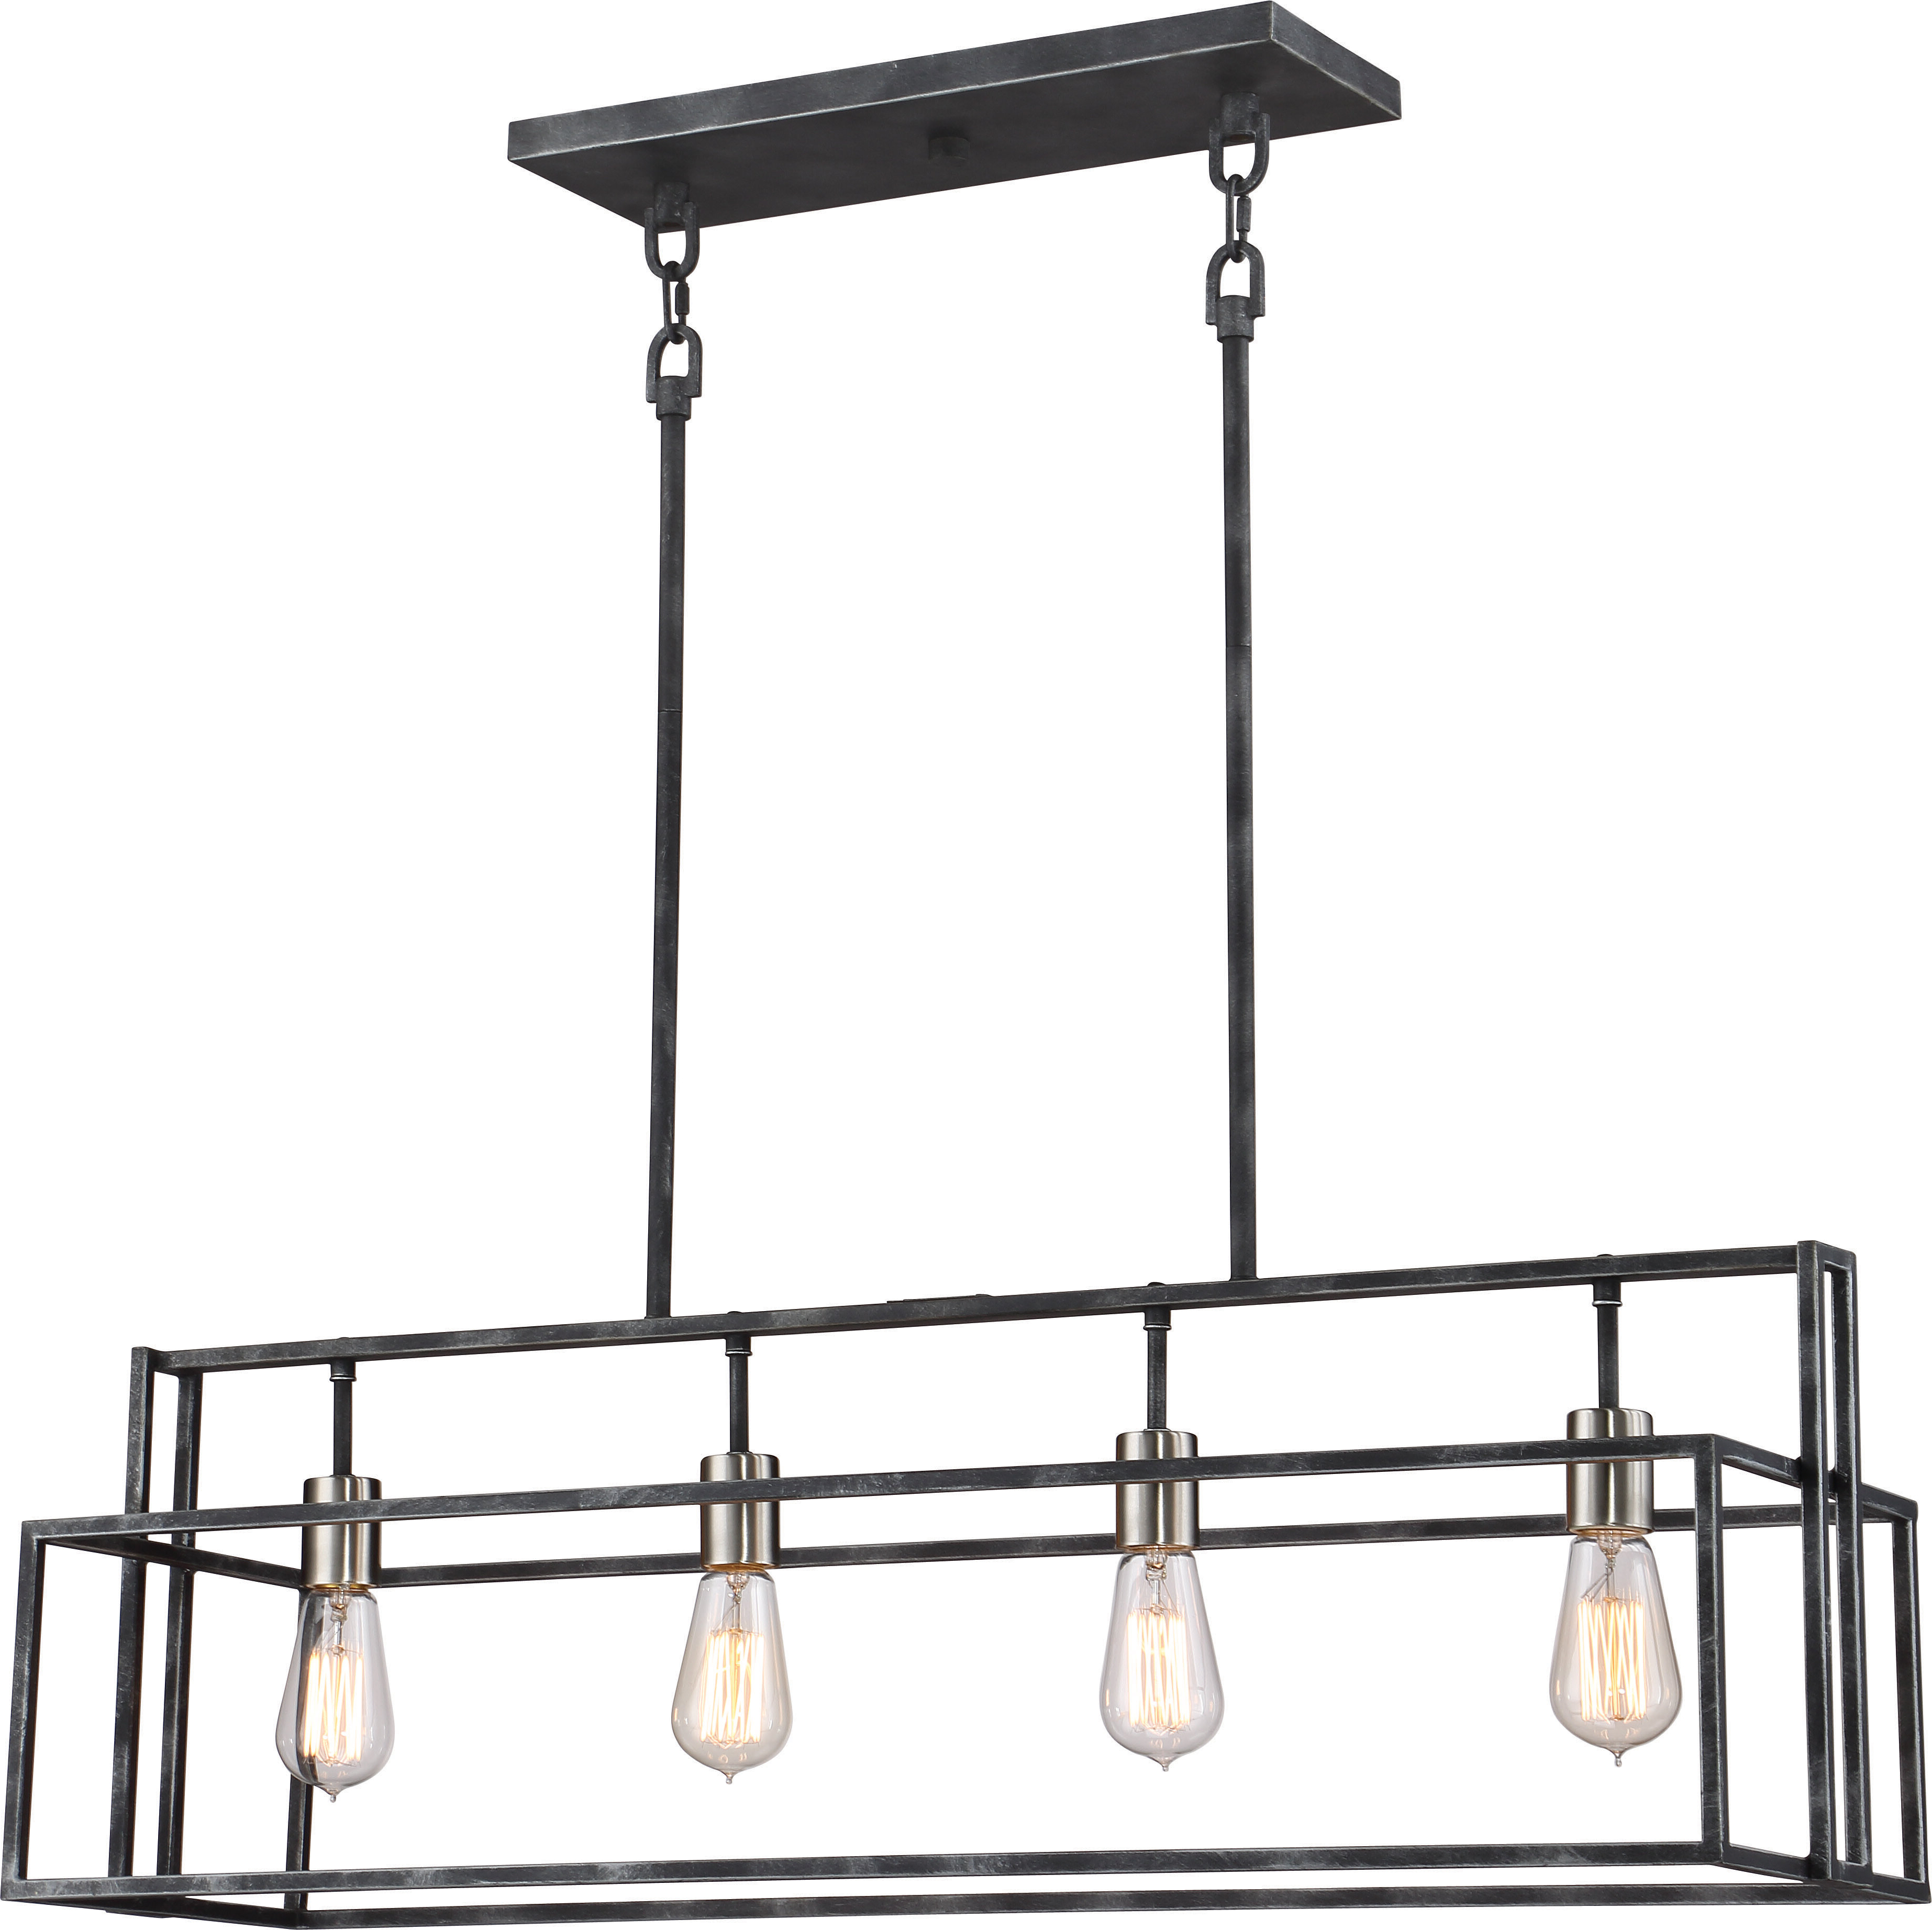 Jefferson 4 Light Kitchen Island Linear Pendant Intended For Best And Newest Sousa 4 Light Kitchen Island Linear Pendants (View 4 of 20)